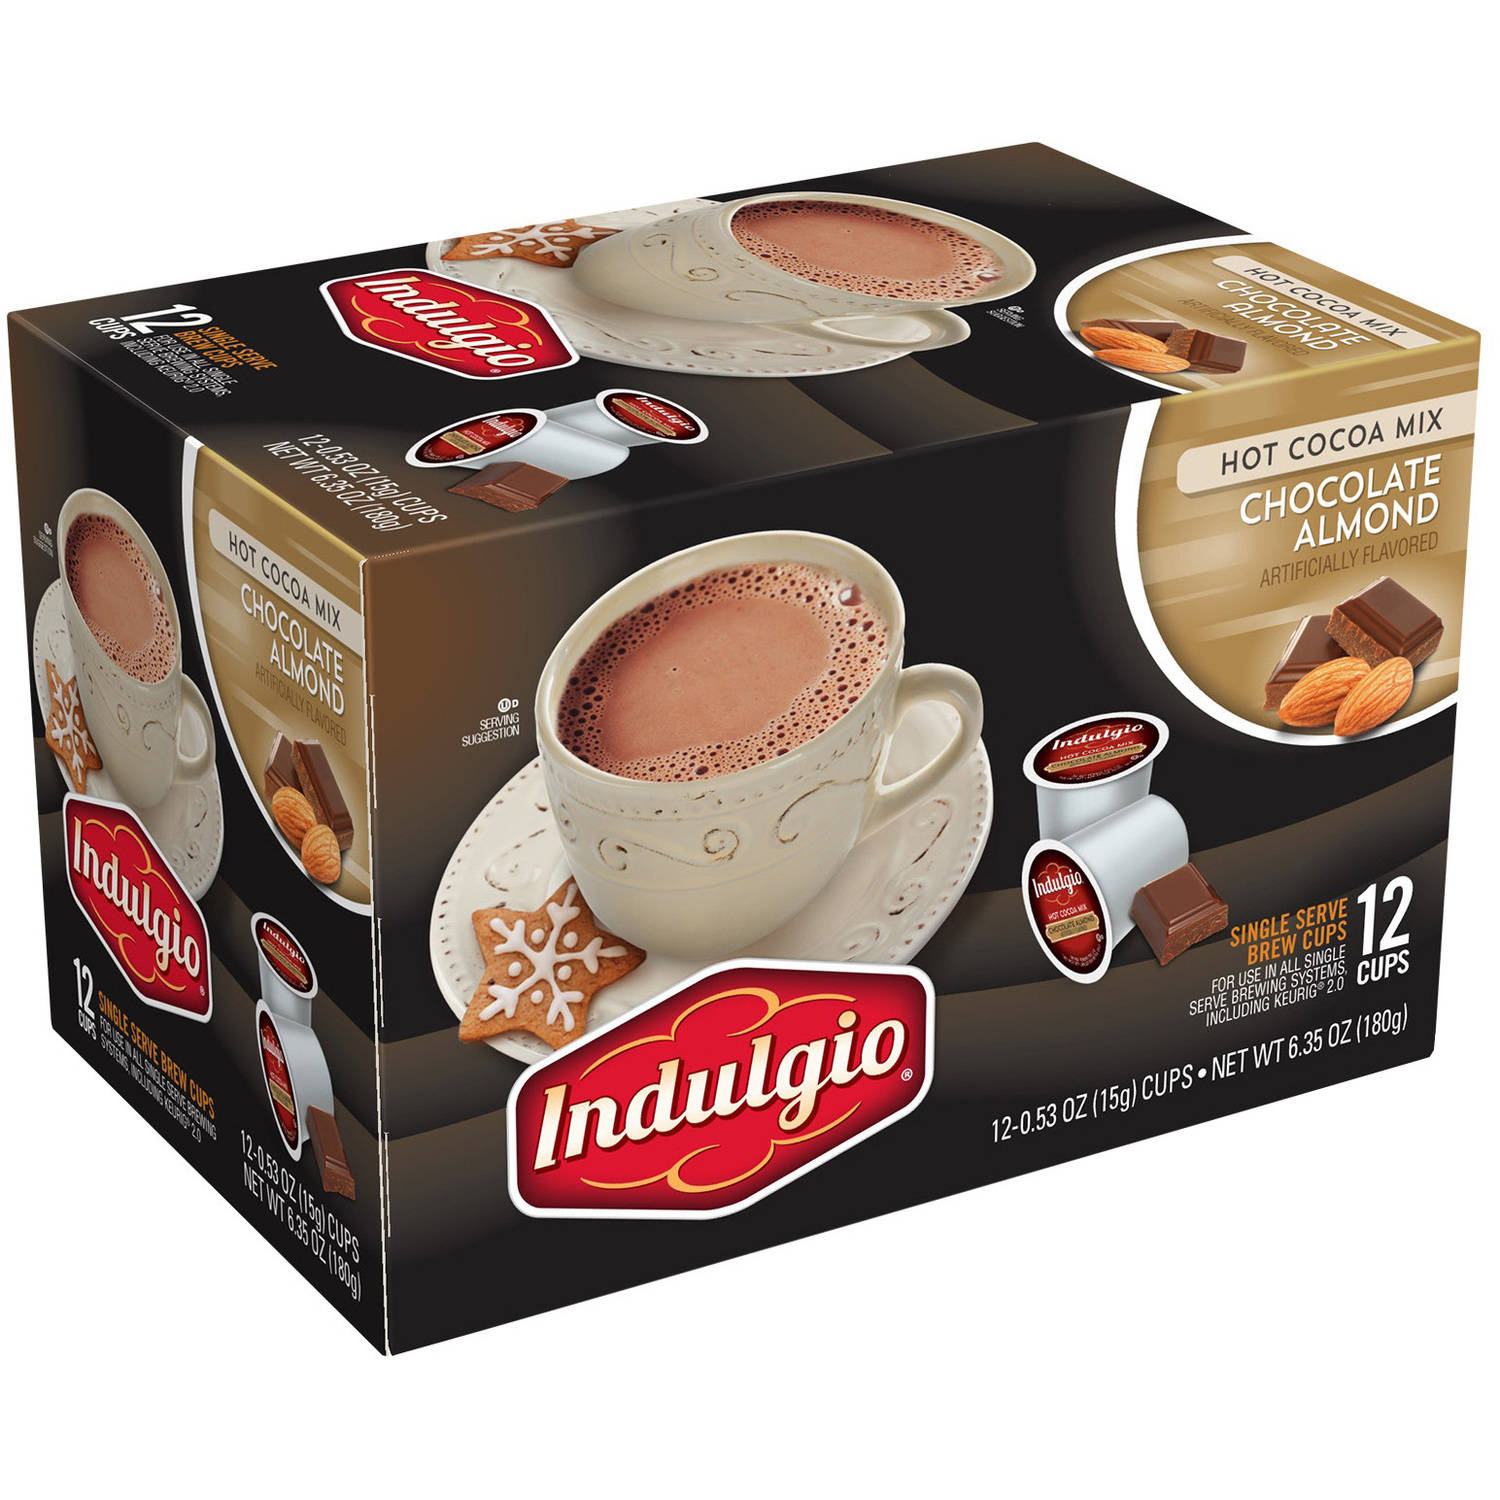 Indulgio Chocolate Almond Hot Cocoa Mix Single Serve Brew Cups, 0.53 oz, 12 count by Trilliant Food